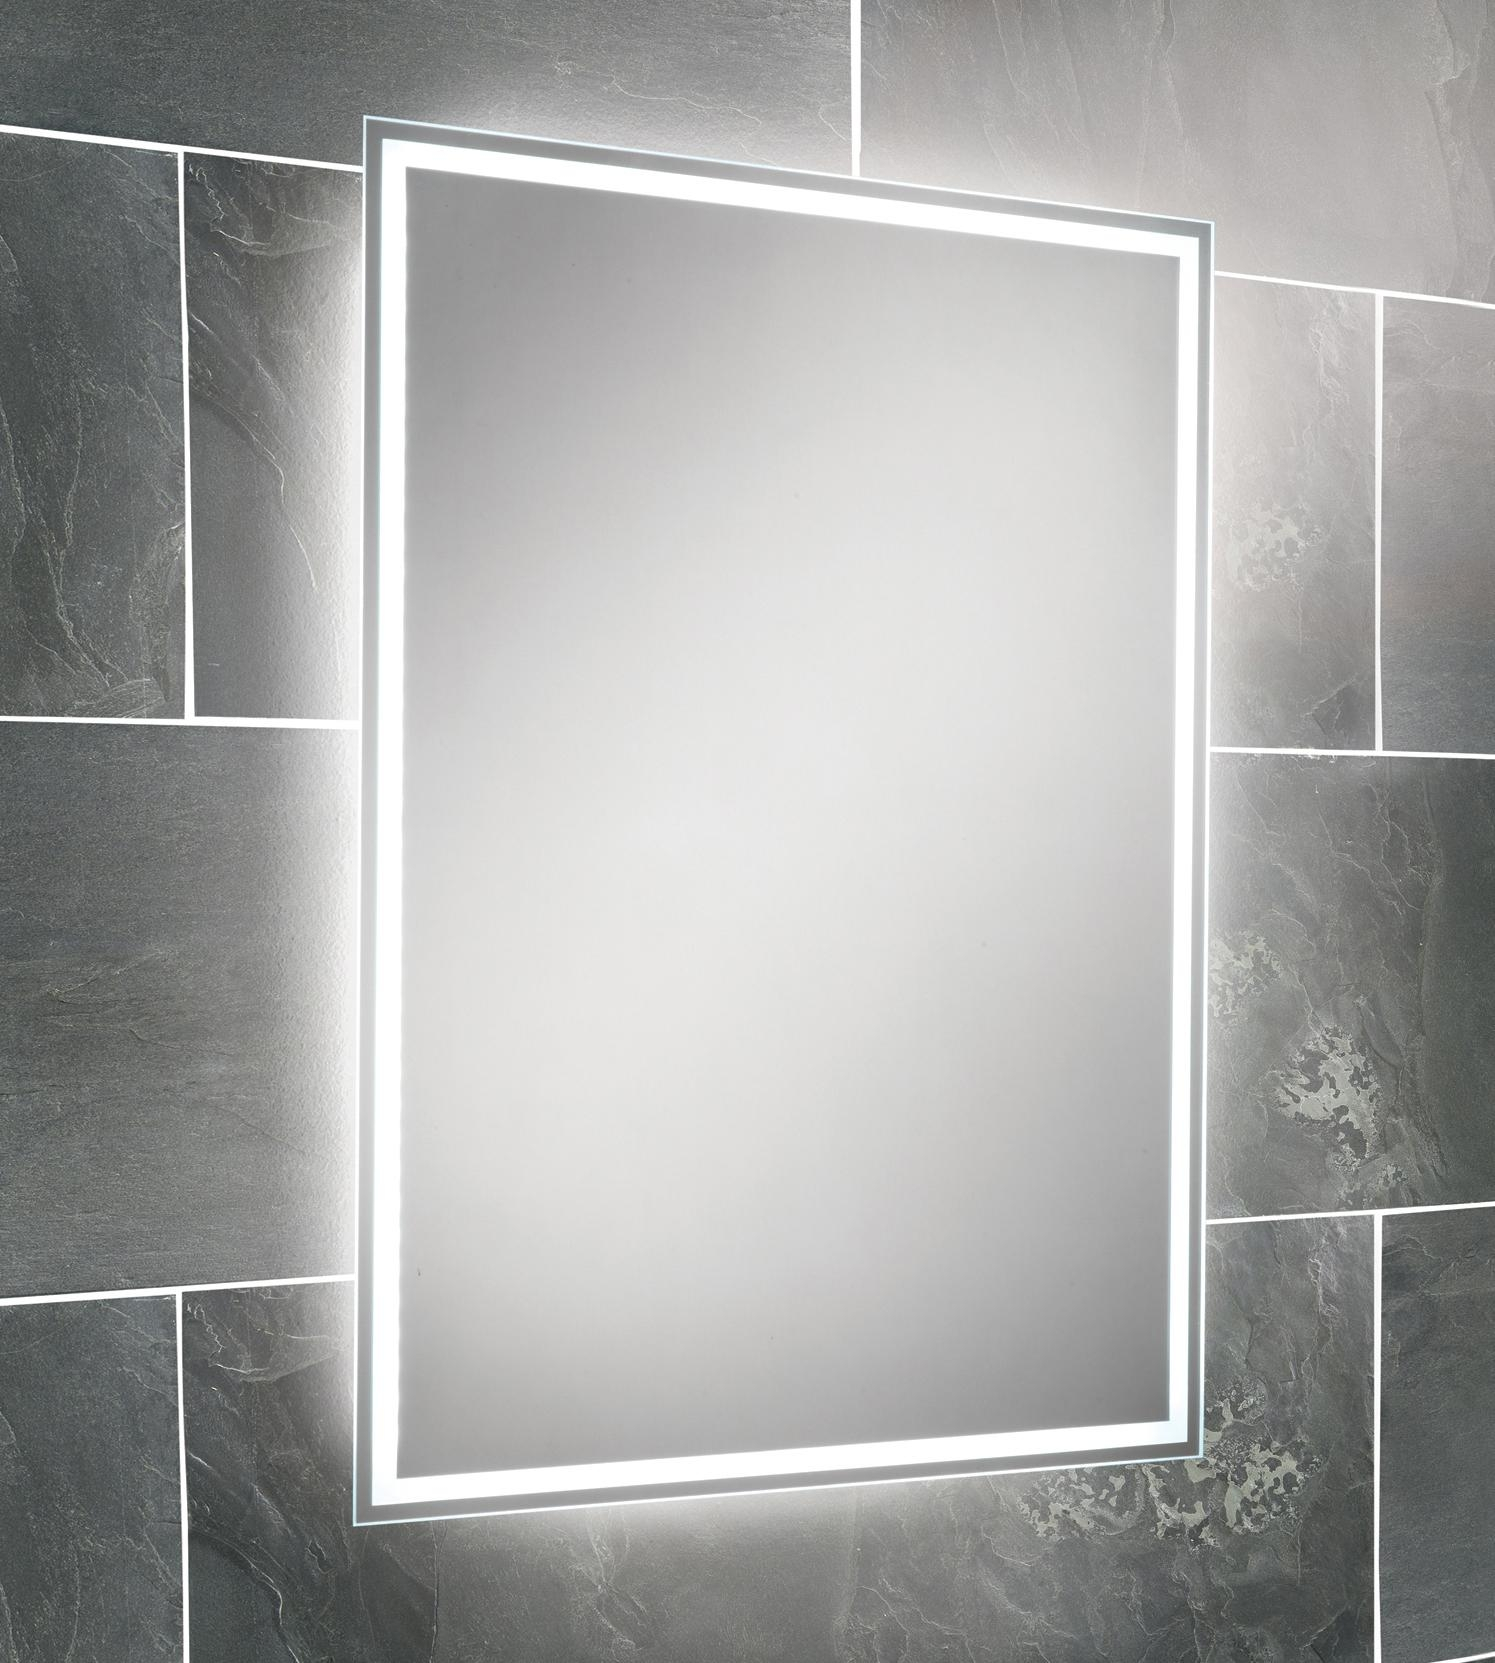 Bathroom : Clever Design Bathroom Mirror Led Lights Strip Demister Inside Led Lit Bathroom Mirrors (Image 4 of 20)